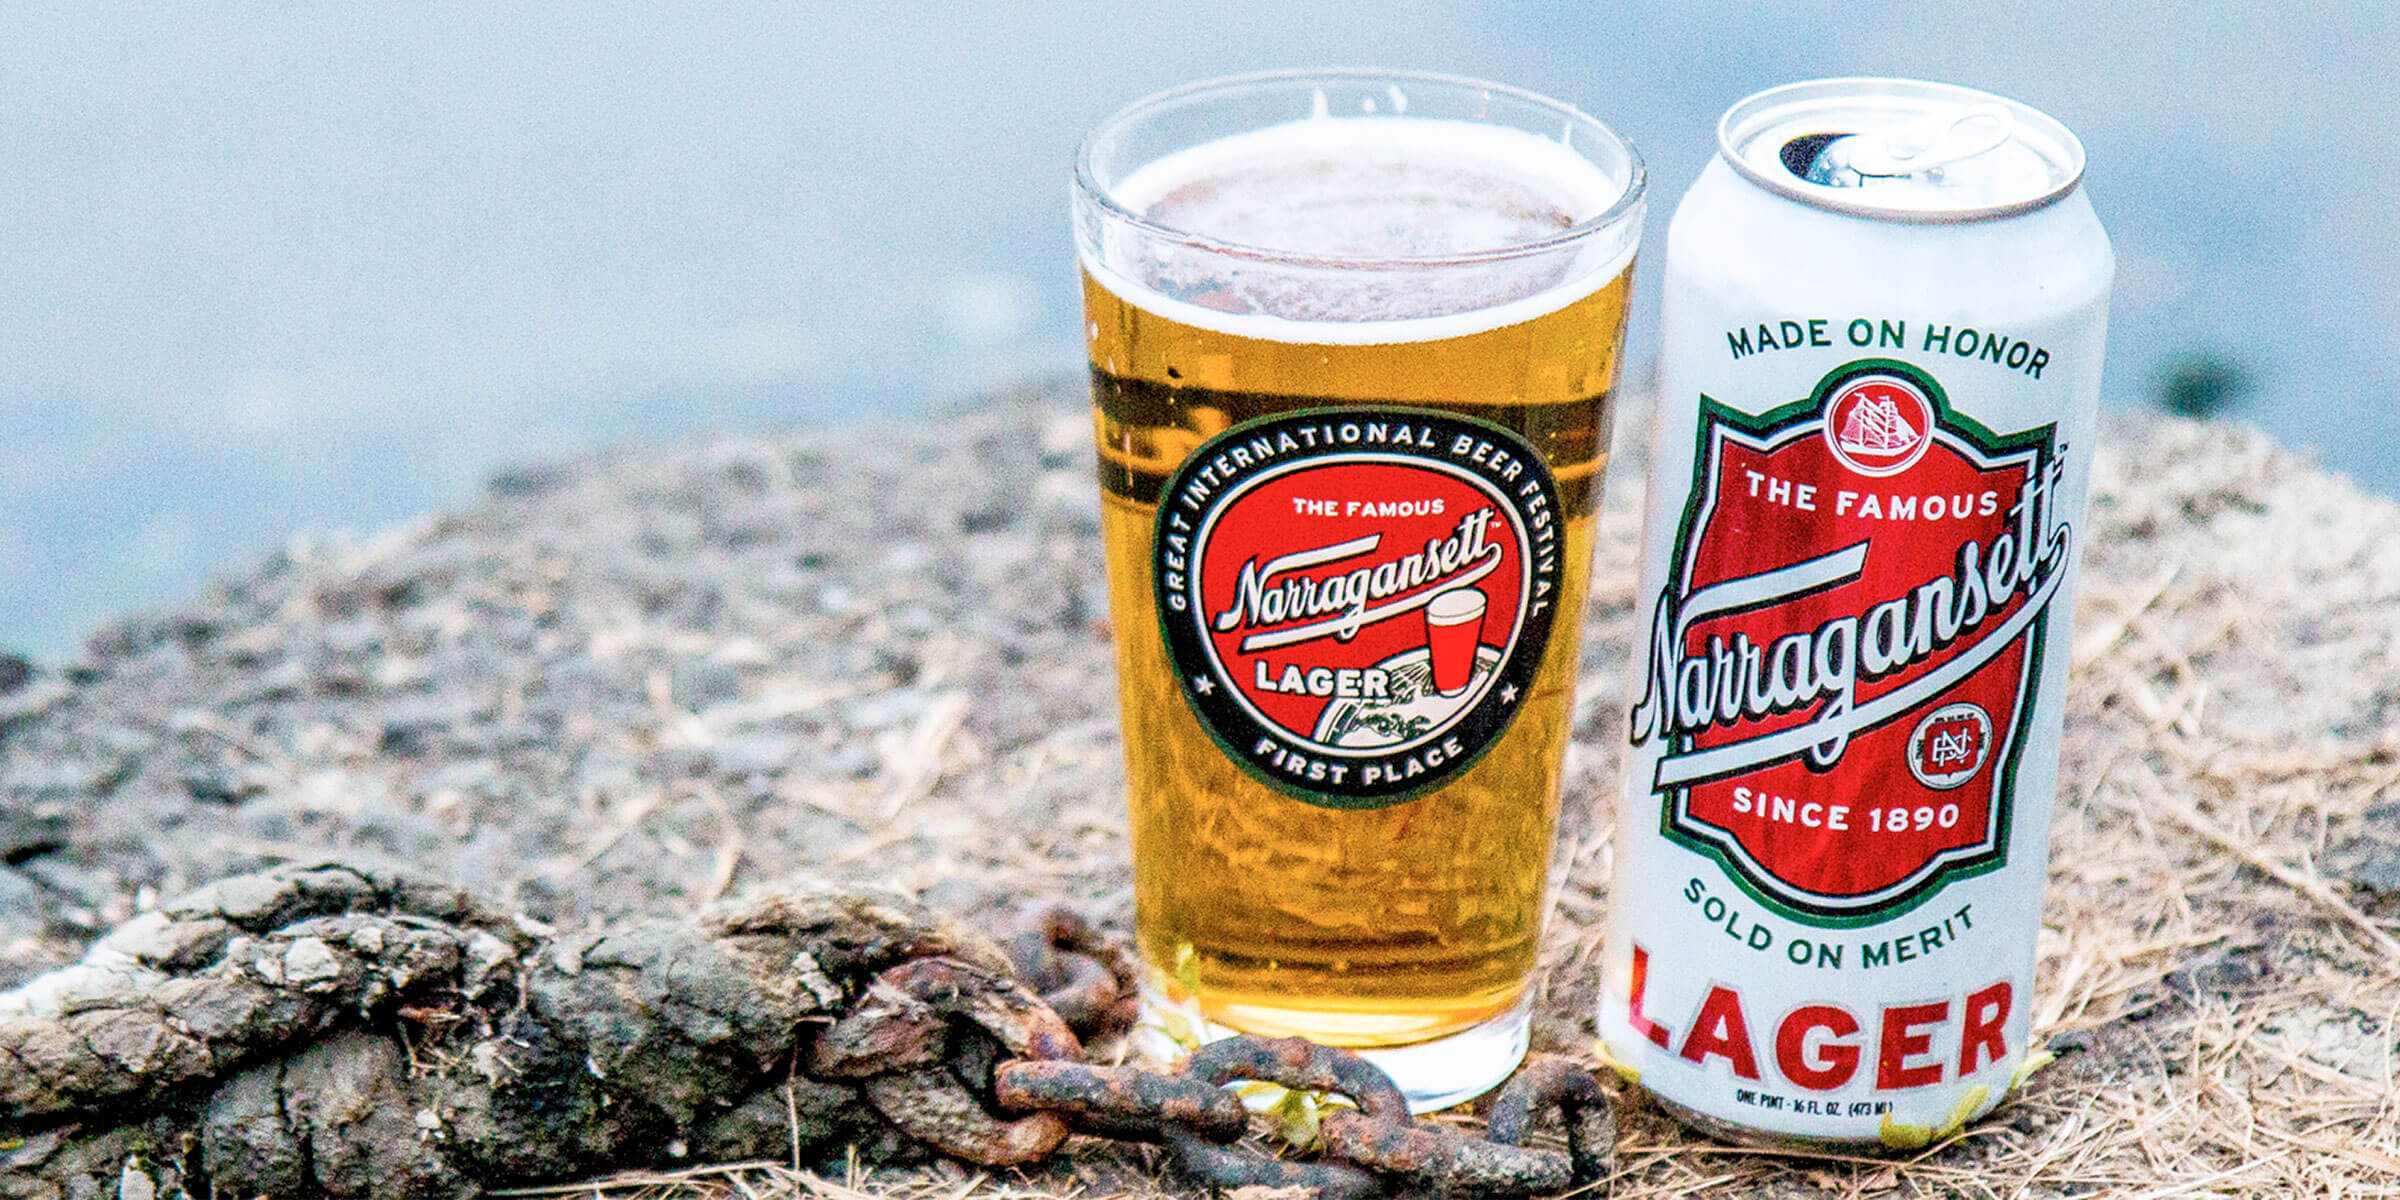 Narragansett Lager by Narragansett Brewing Company